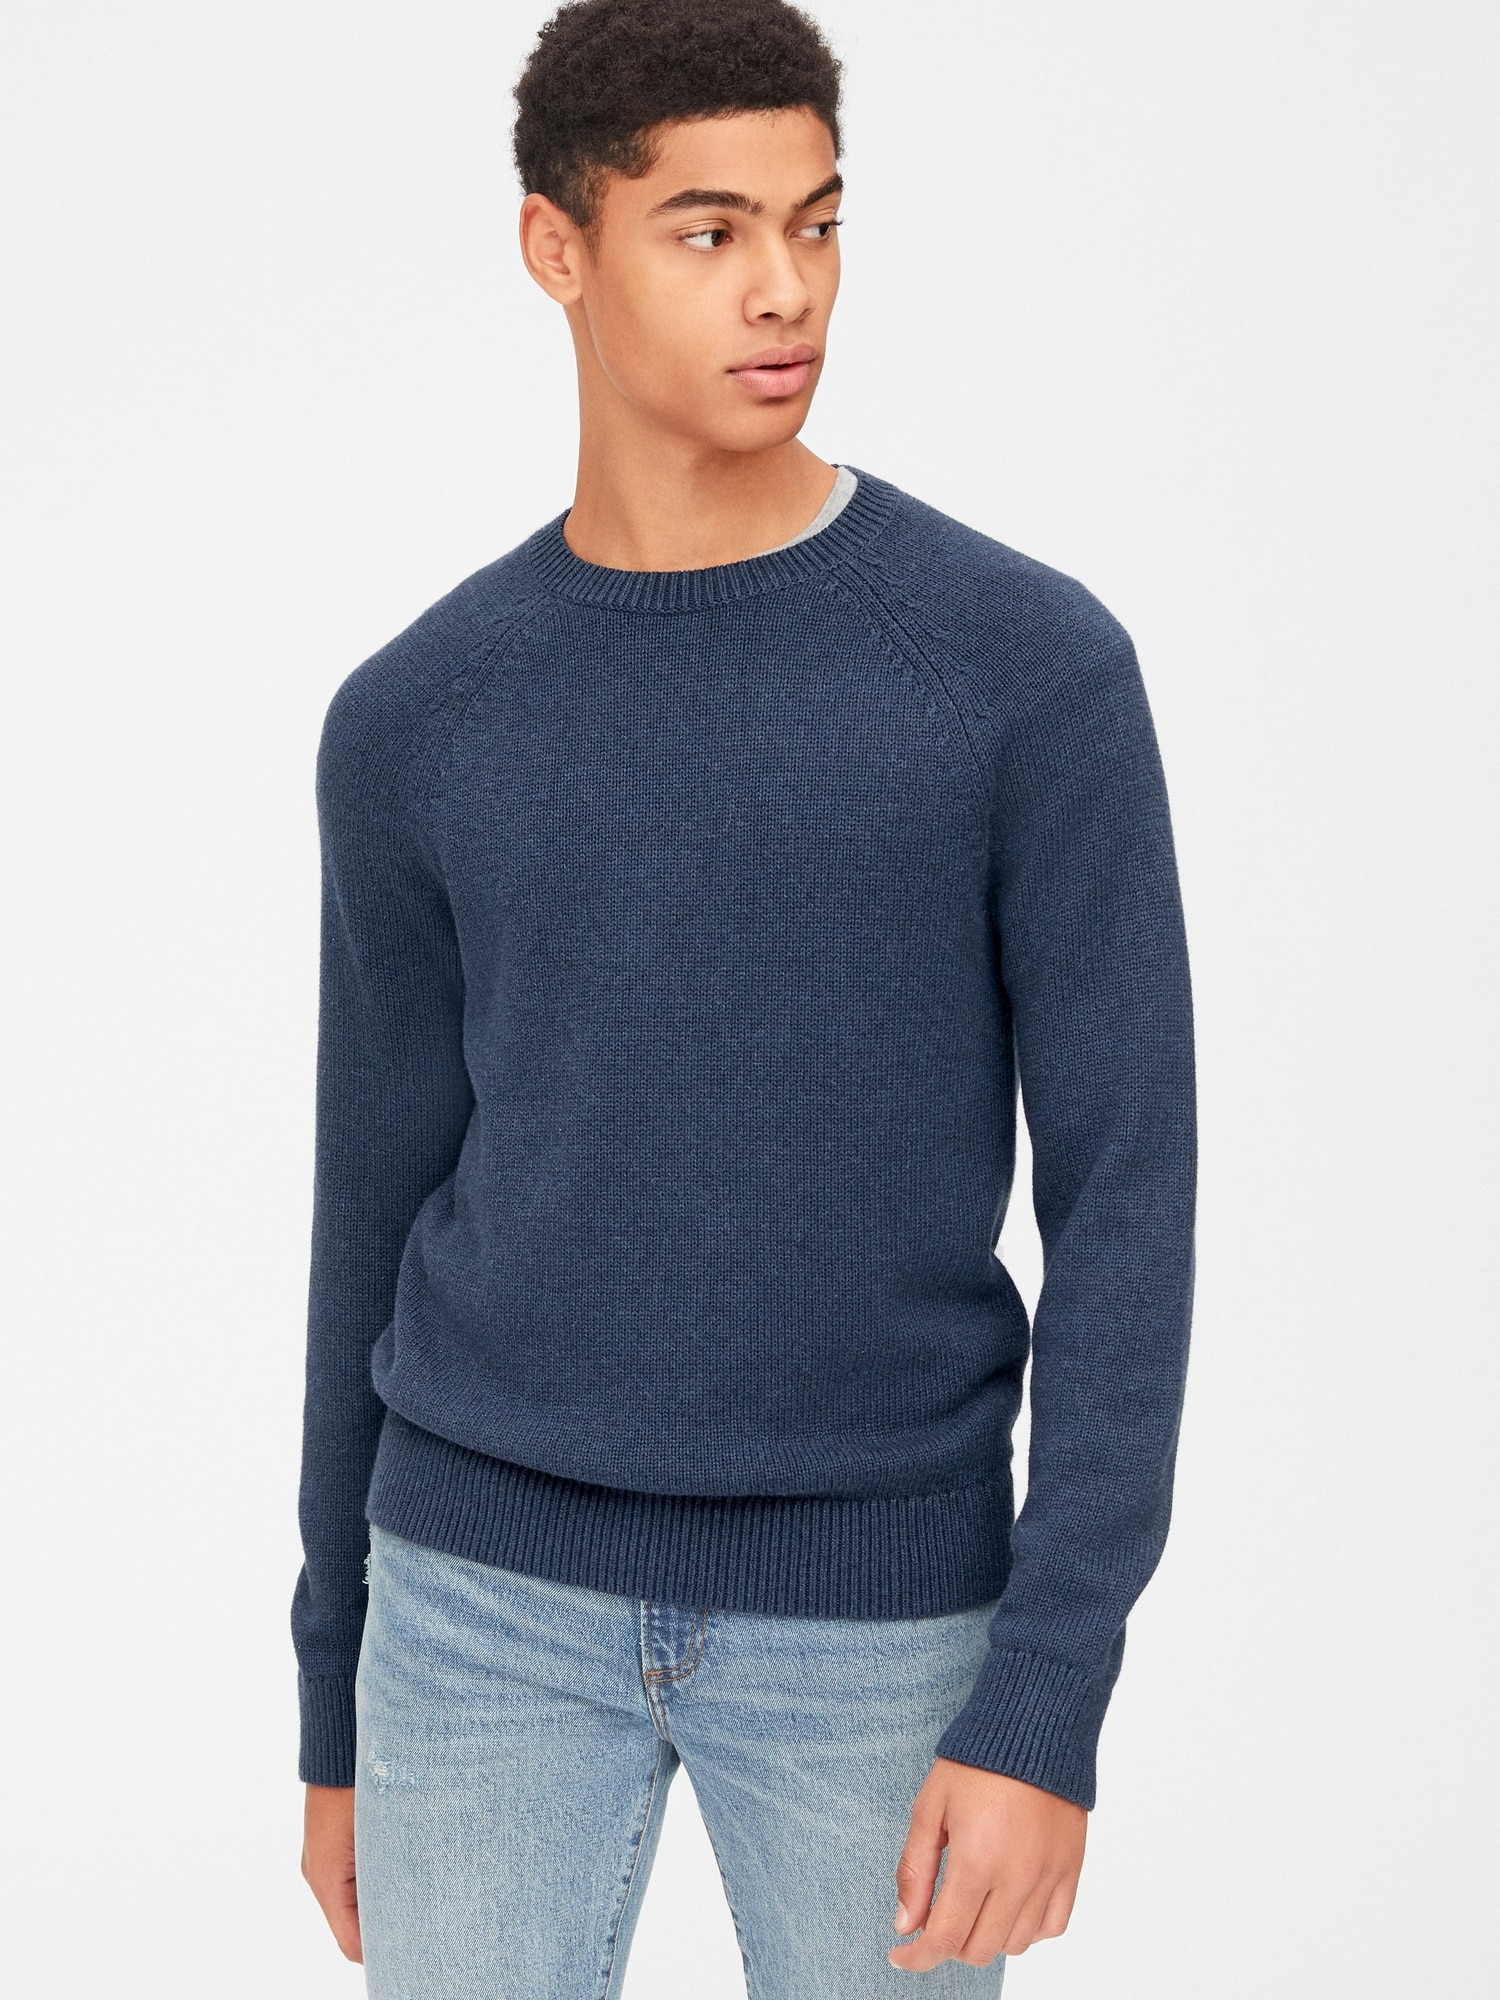 6f63e69c1 Textured Crewneck Pullover Sweater